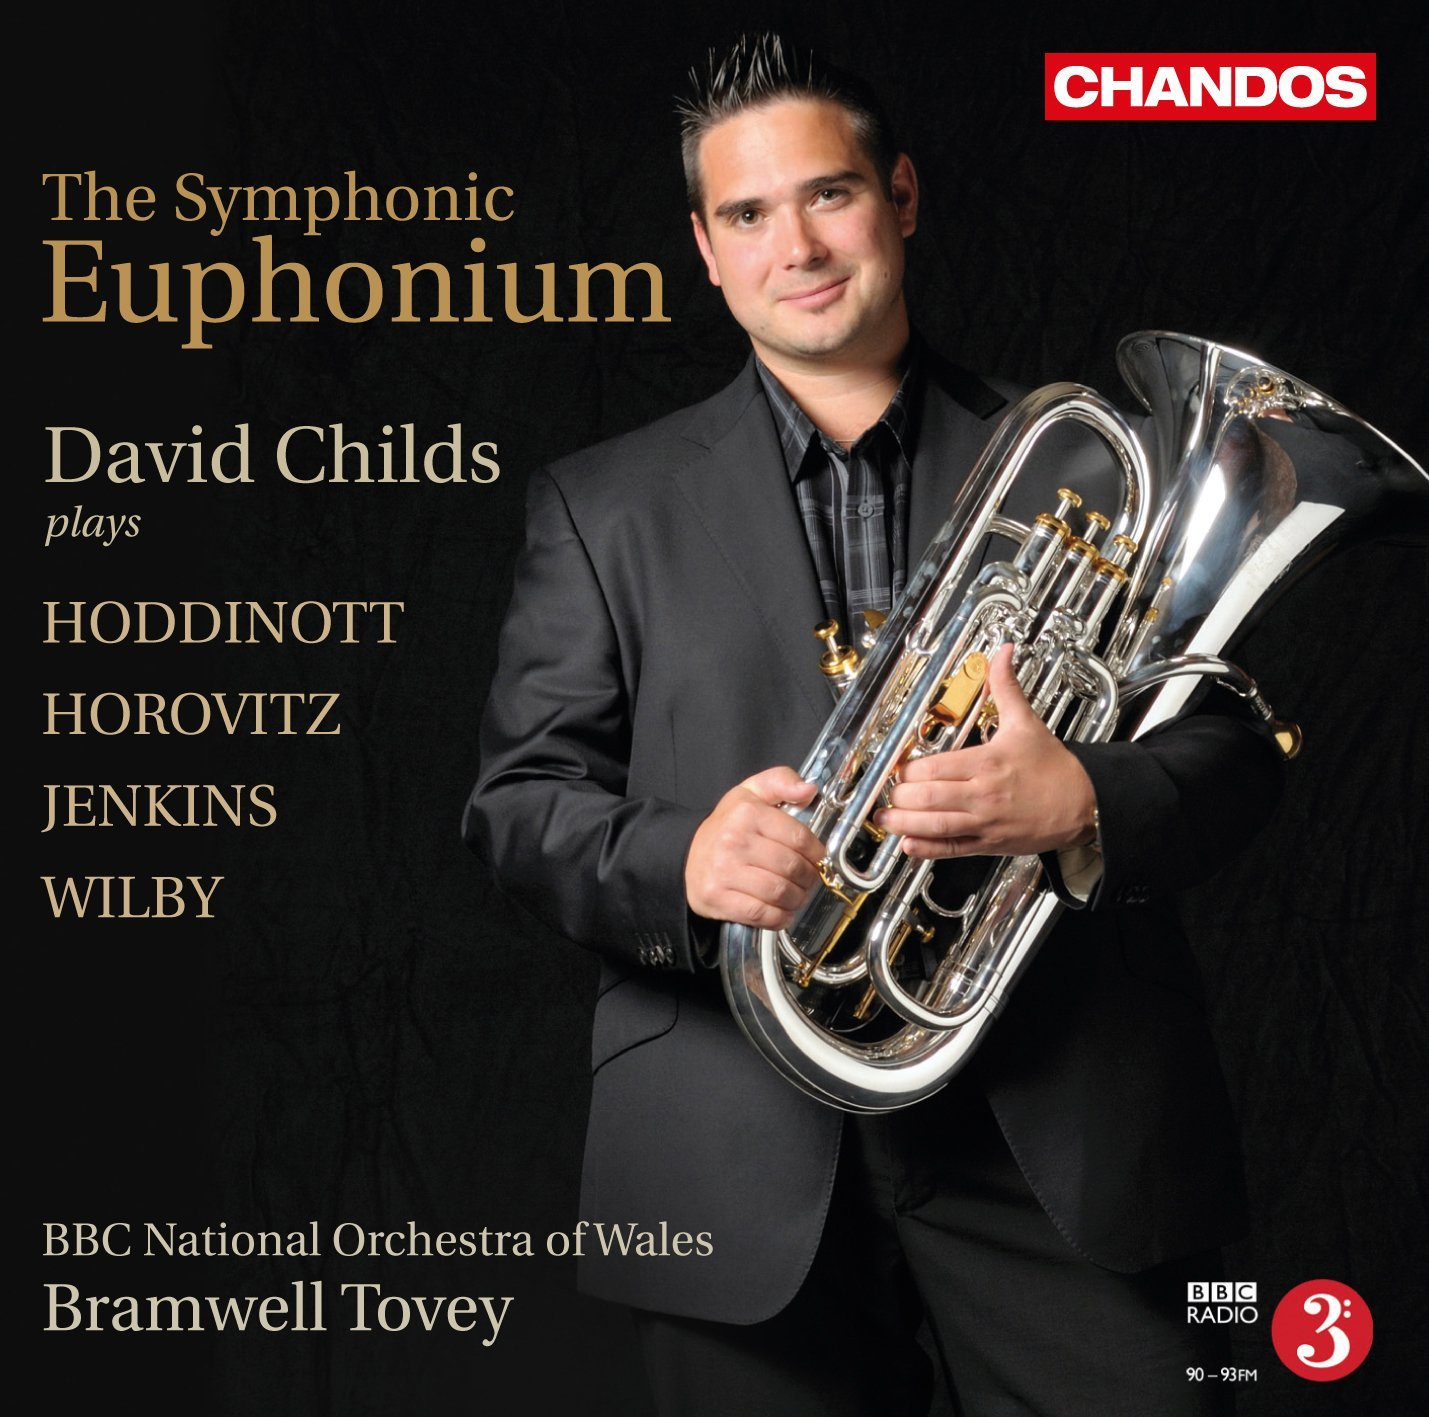 CD -The Symphonic Euphonium - David Childs and the BBC National Orchestra of Wales (Cond.Bram Tovey)